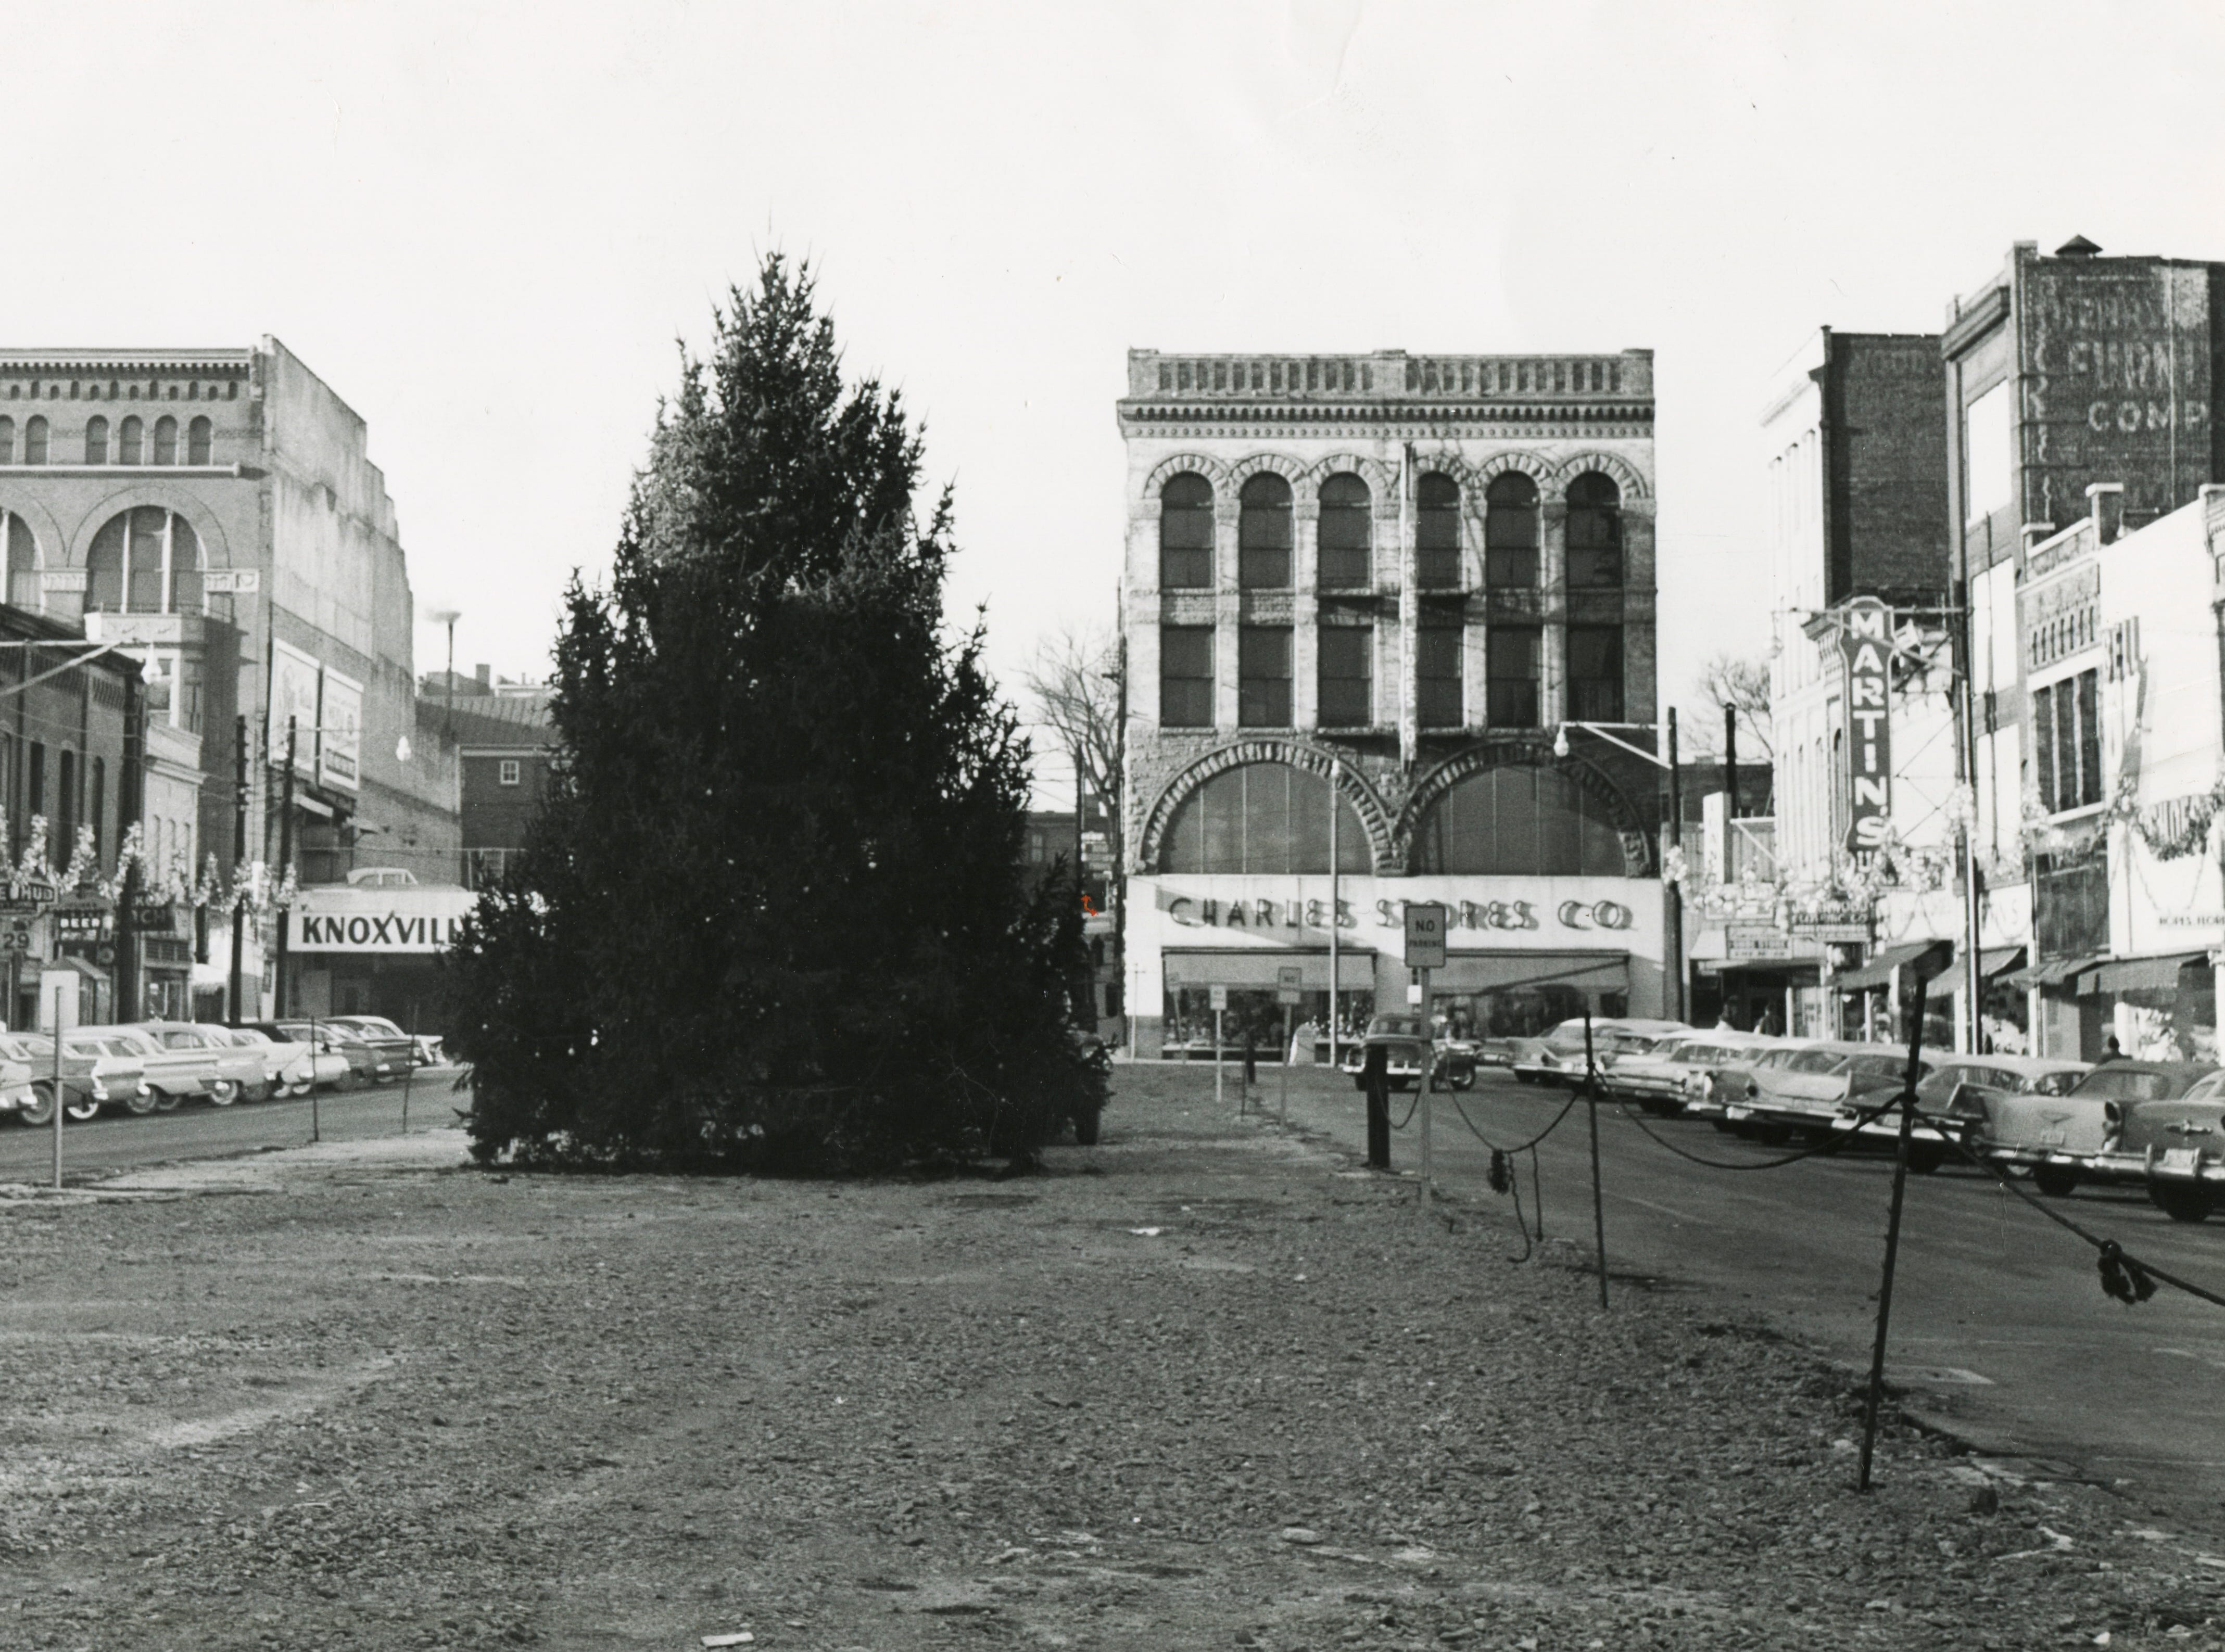 A 35-foot Christmas tree is pictured on the site of the razed Market House on Dec. 1, 1960, at Market Square. The tree  was donated by A.l. Simpson, 3707 Knox Lane; nurseryman Joe N. Howell took care of the cutting and transportation duties. It is the first time in 20 years that Market Square has had a Christmas tree.